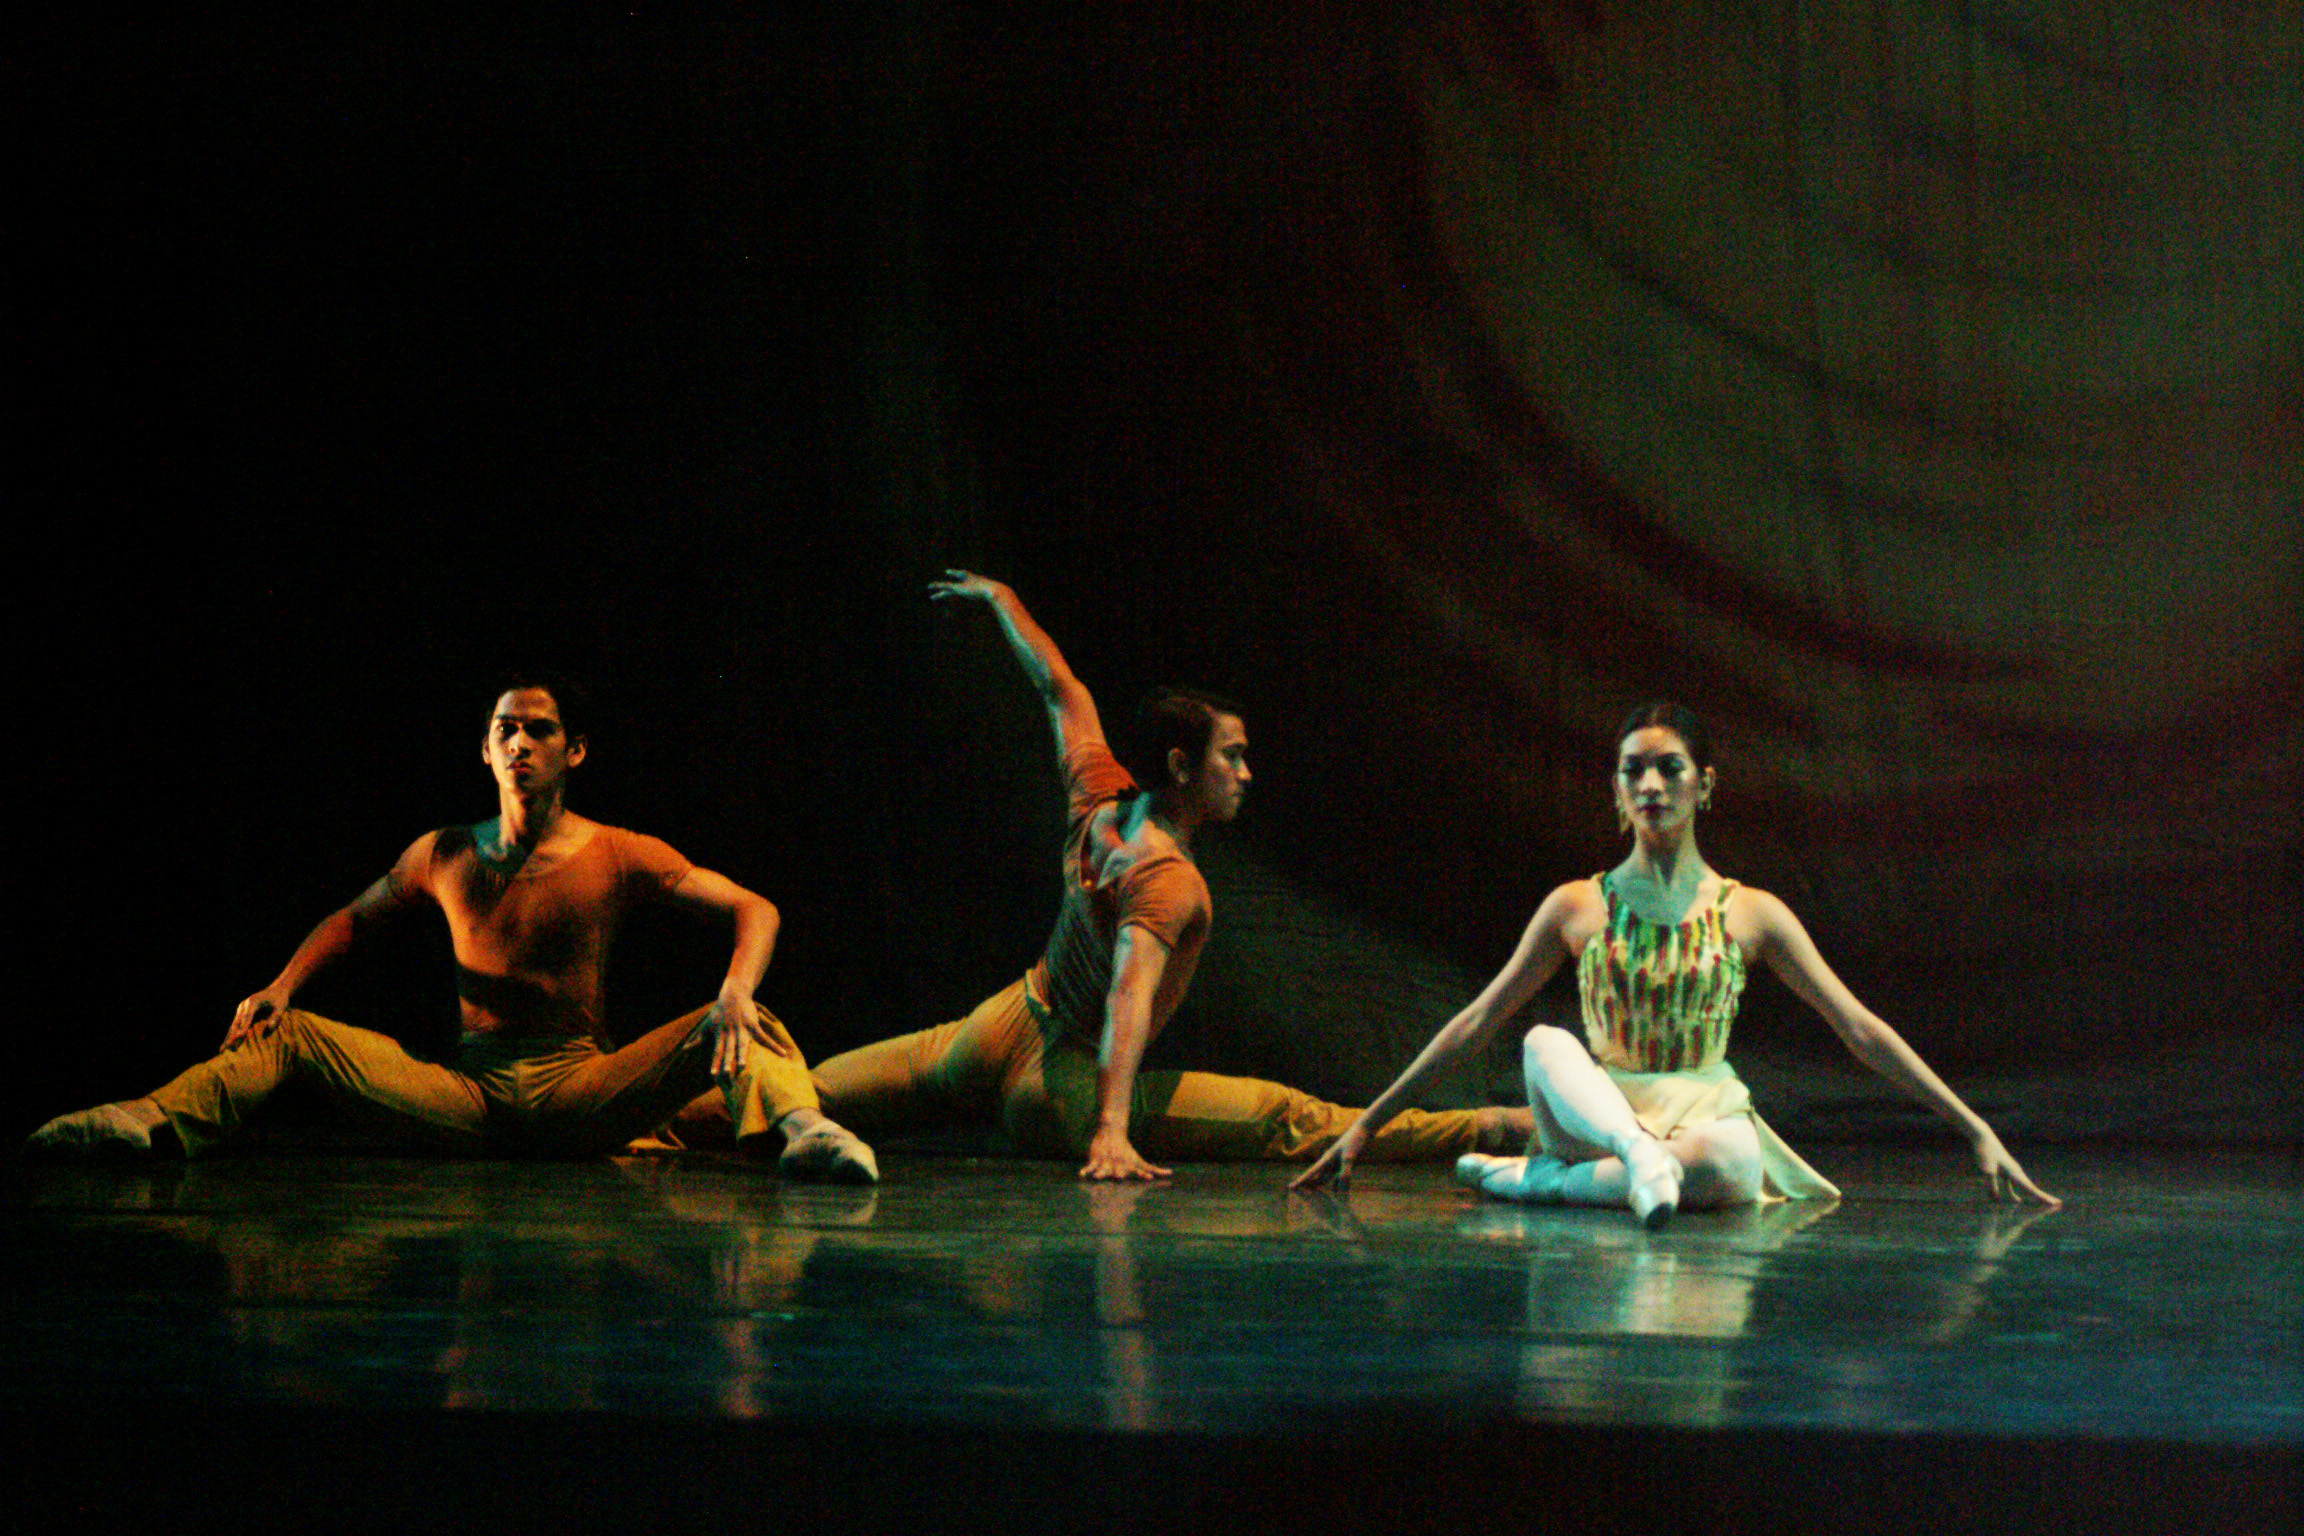 Rudy De Dios, Jerome Espejo and Gabriella Galvez dance the Gershwin-inspired choreography in 2005. Photo from the Ballet Manila Archives collection